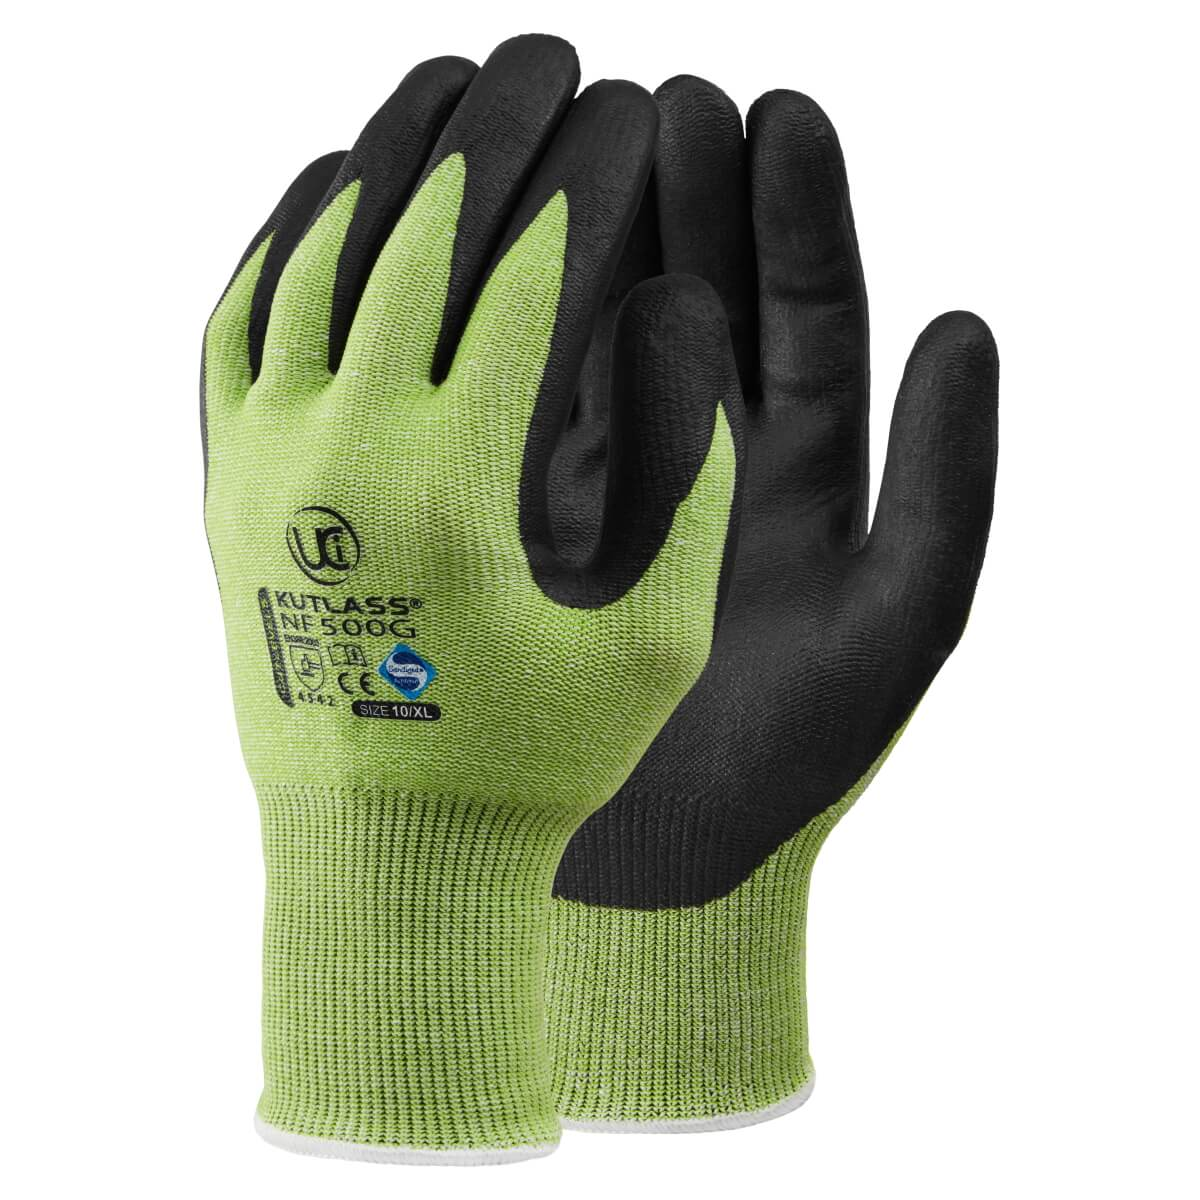 GL4143 Kutlass Cut Level 5 Black Nitrile Palm Coated Gloves